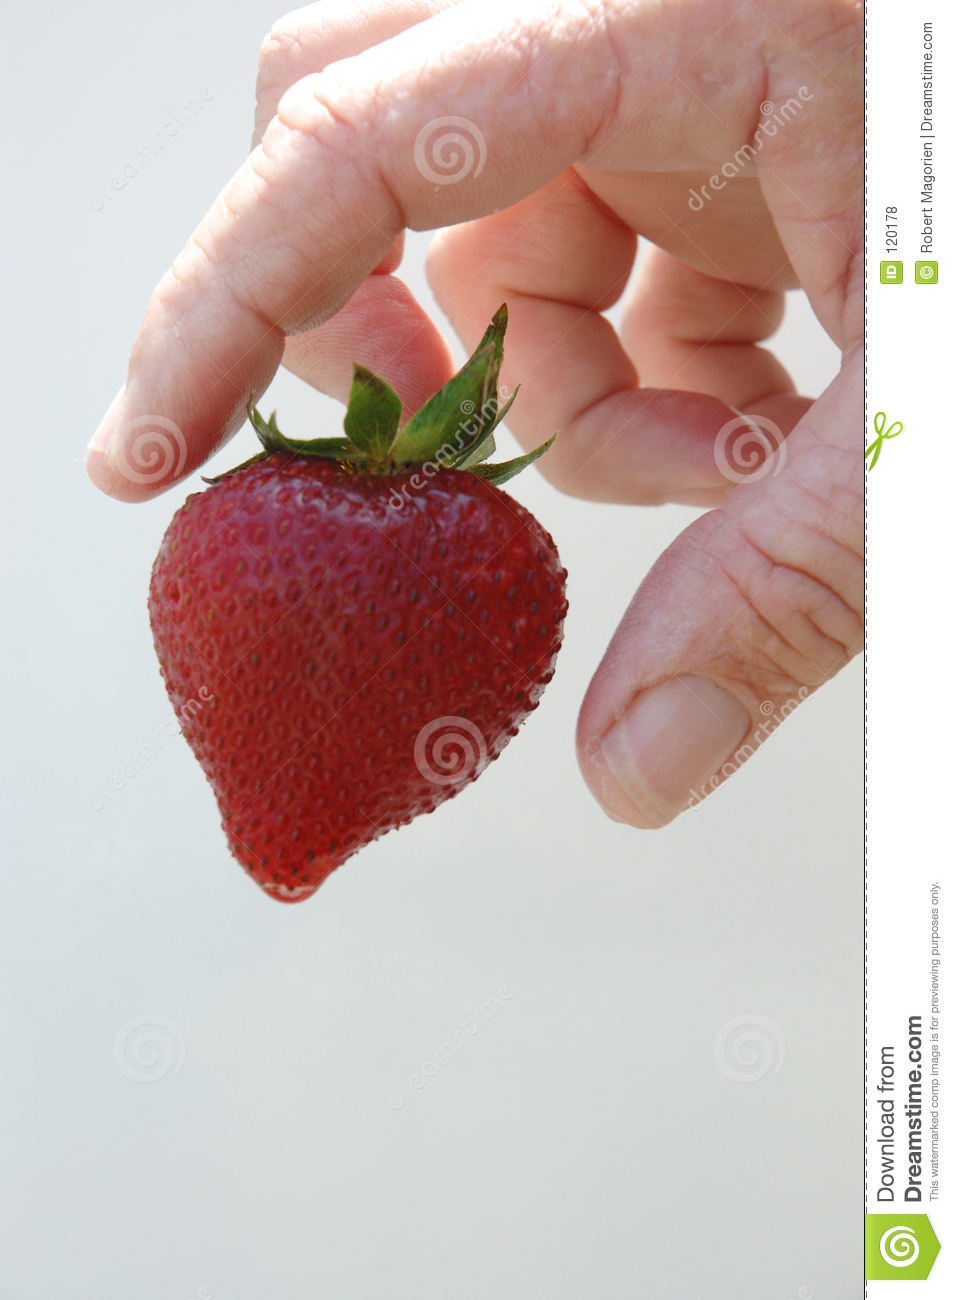 Strawberry and hand